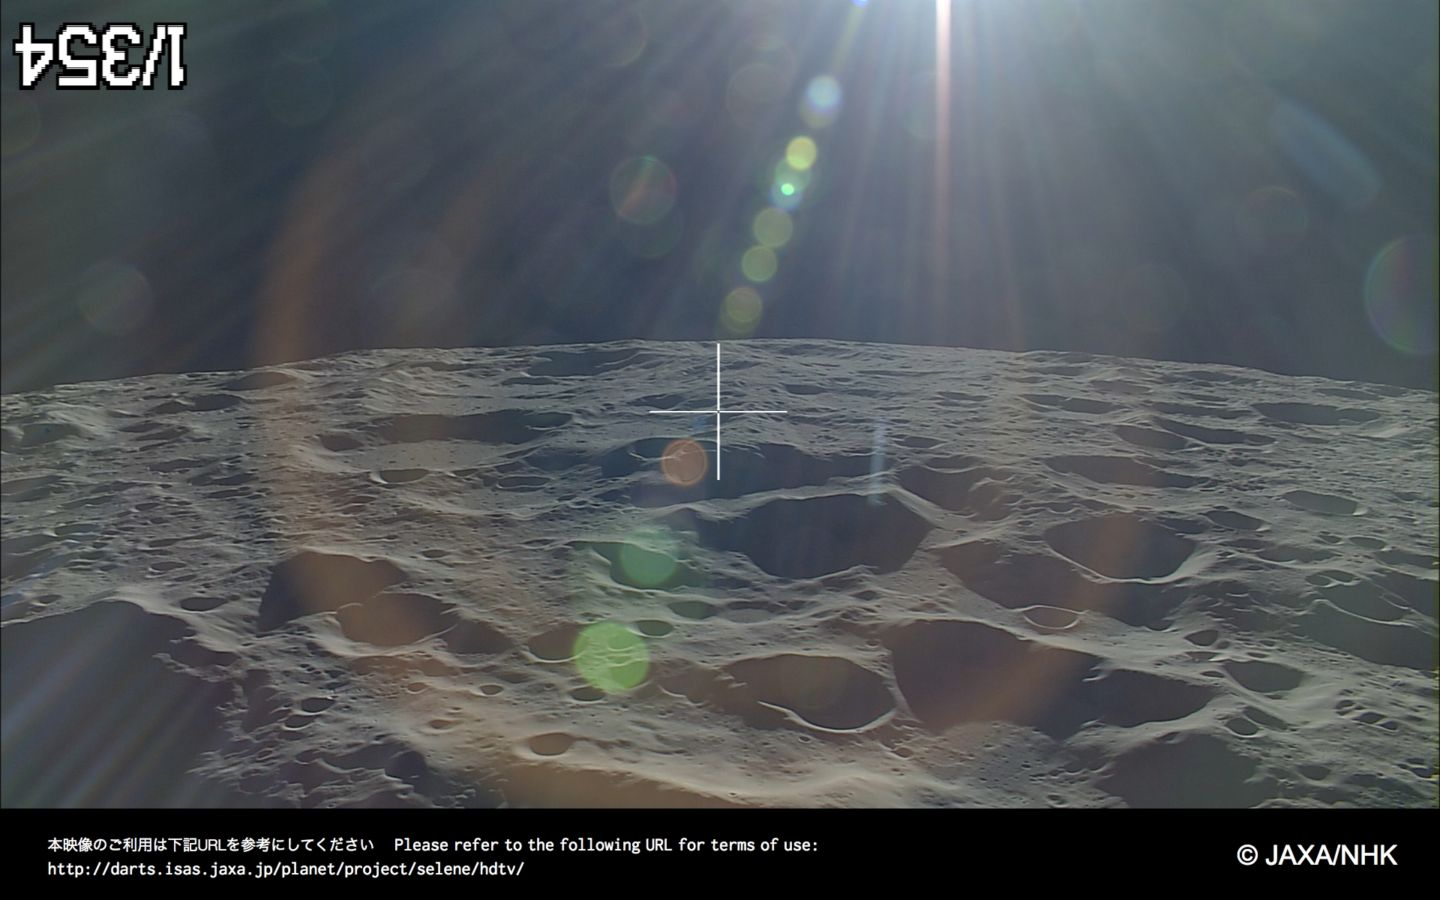 Moretus and Clavius craters, with lens flare. Credits: JAXA